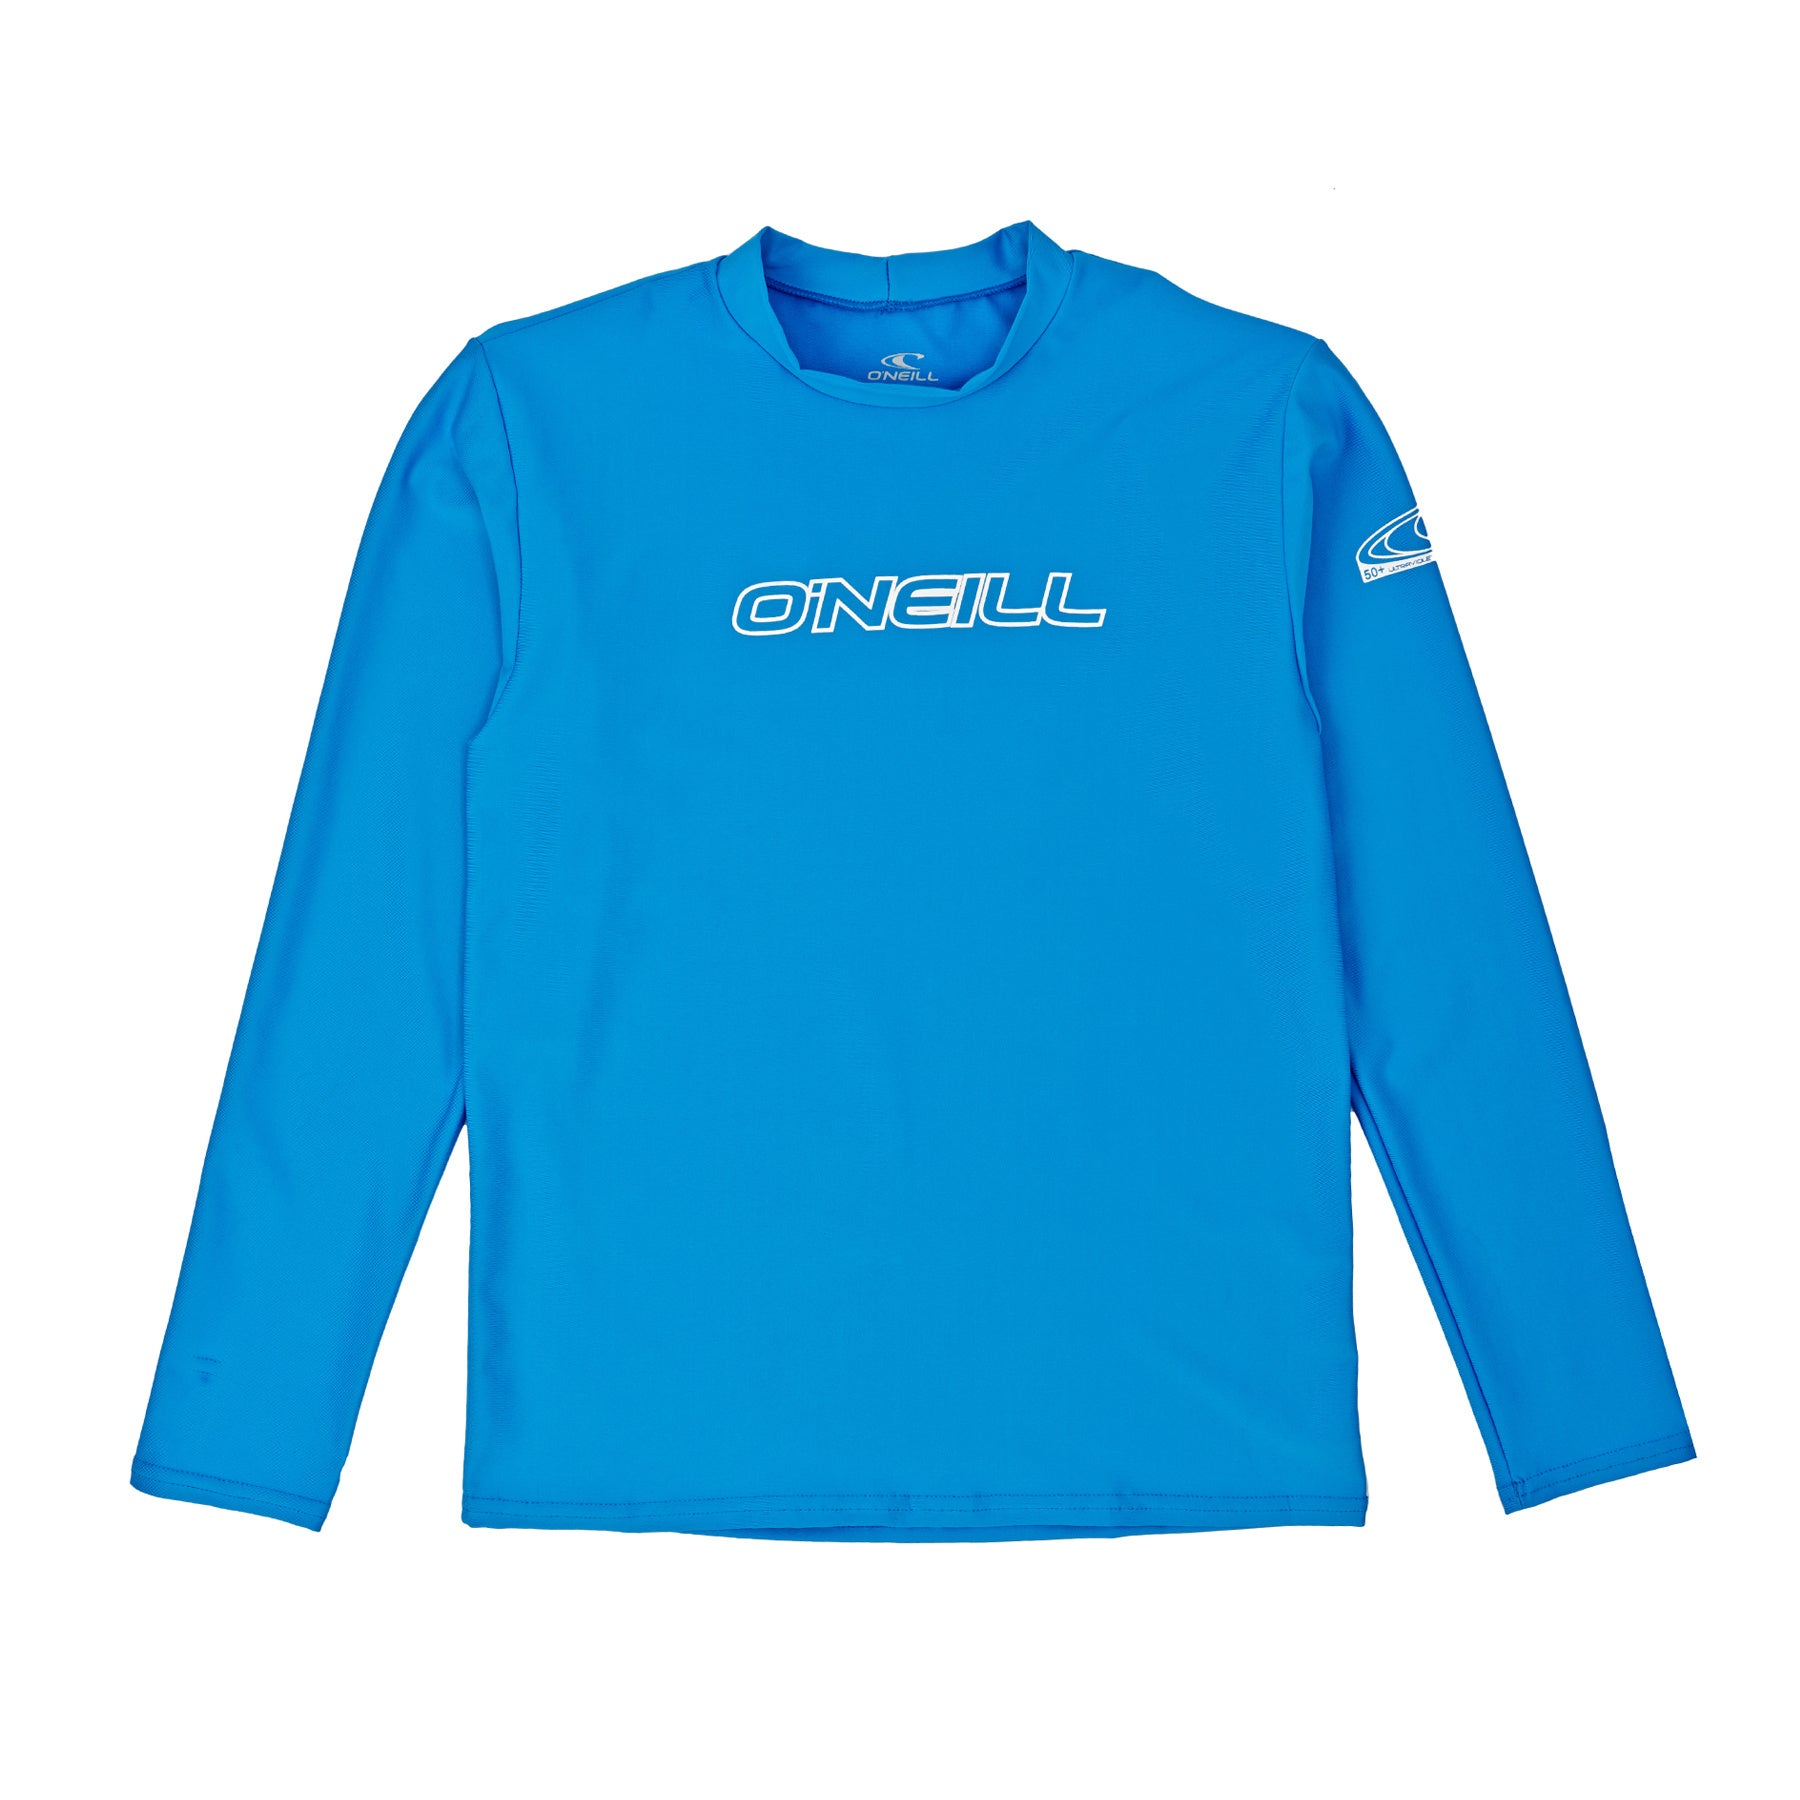 O Neill Basic Skins Long Sleeve Tee Boys Rash Vest - Brite Blue